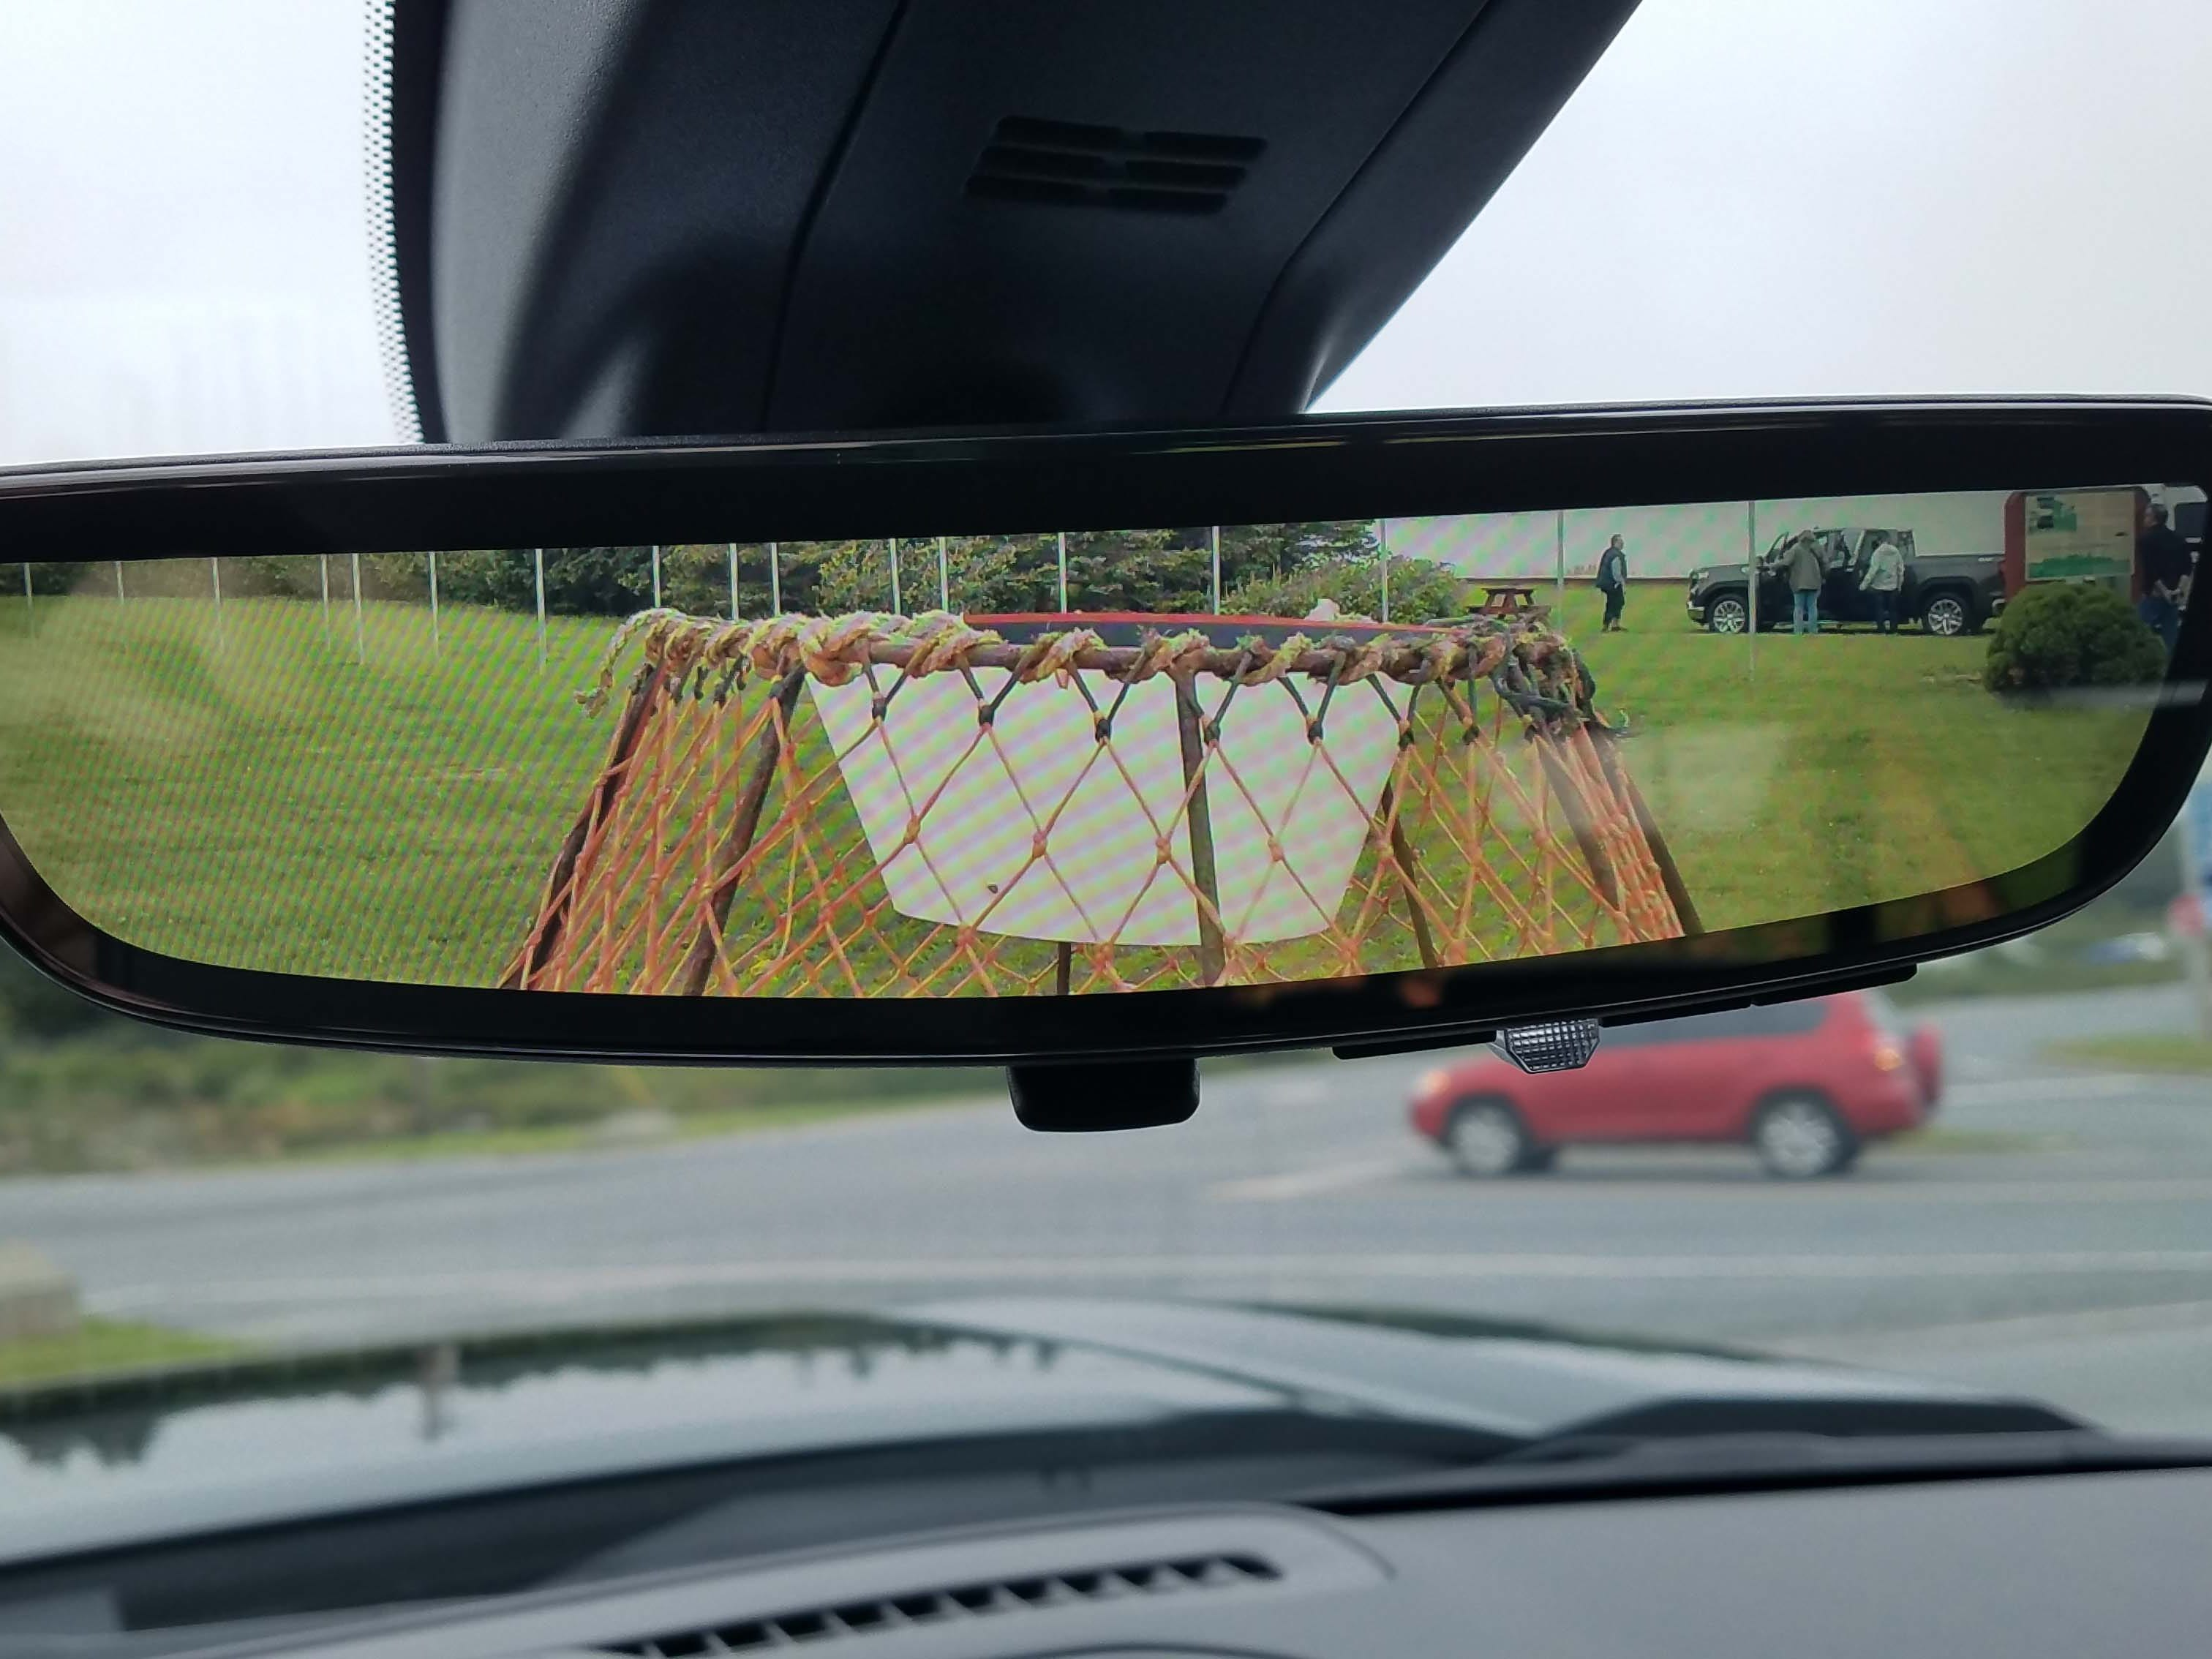 Optional on the 2019 GMC Sierra is a camera mirror that makes monitoring the rear bed and trailer easier.